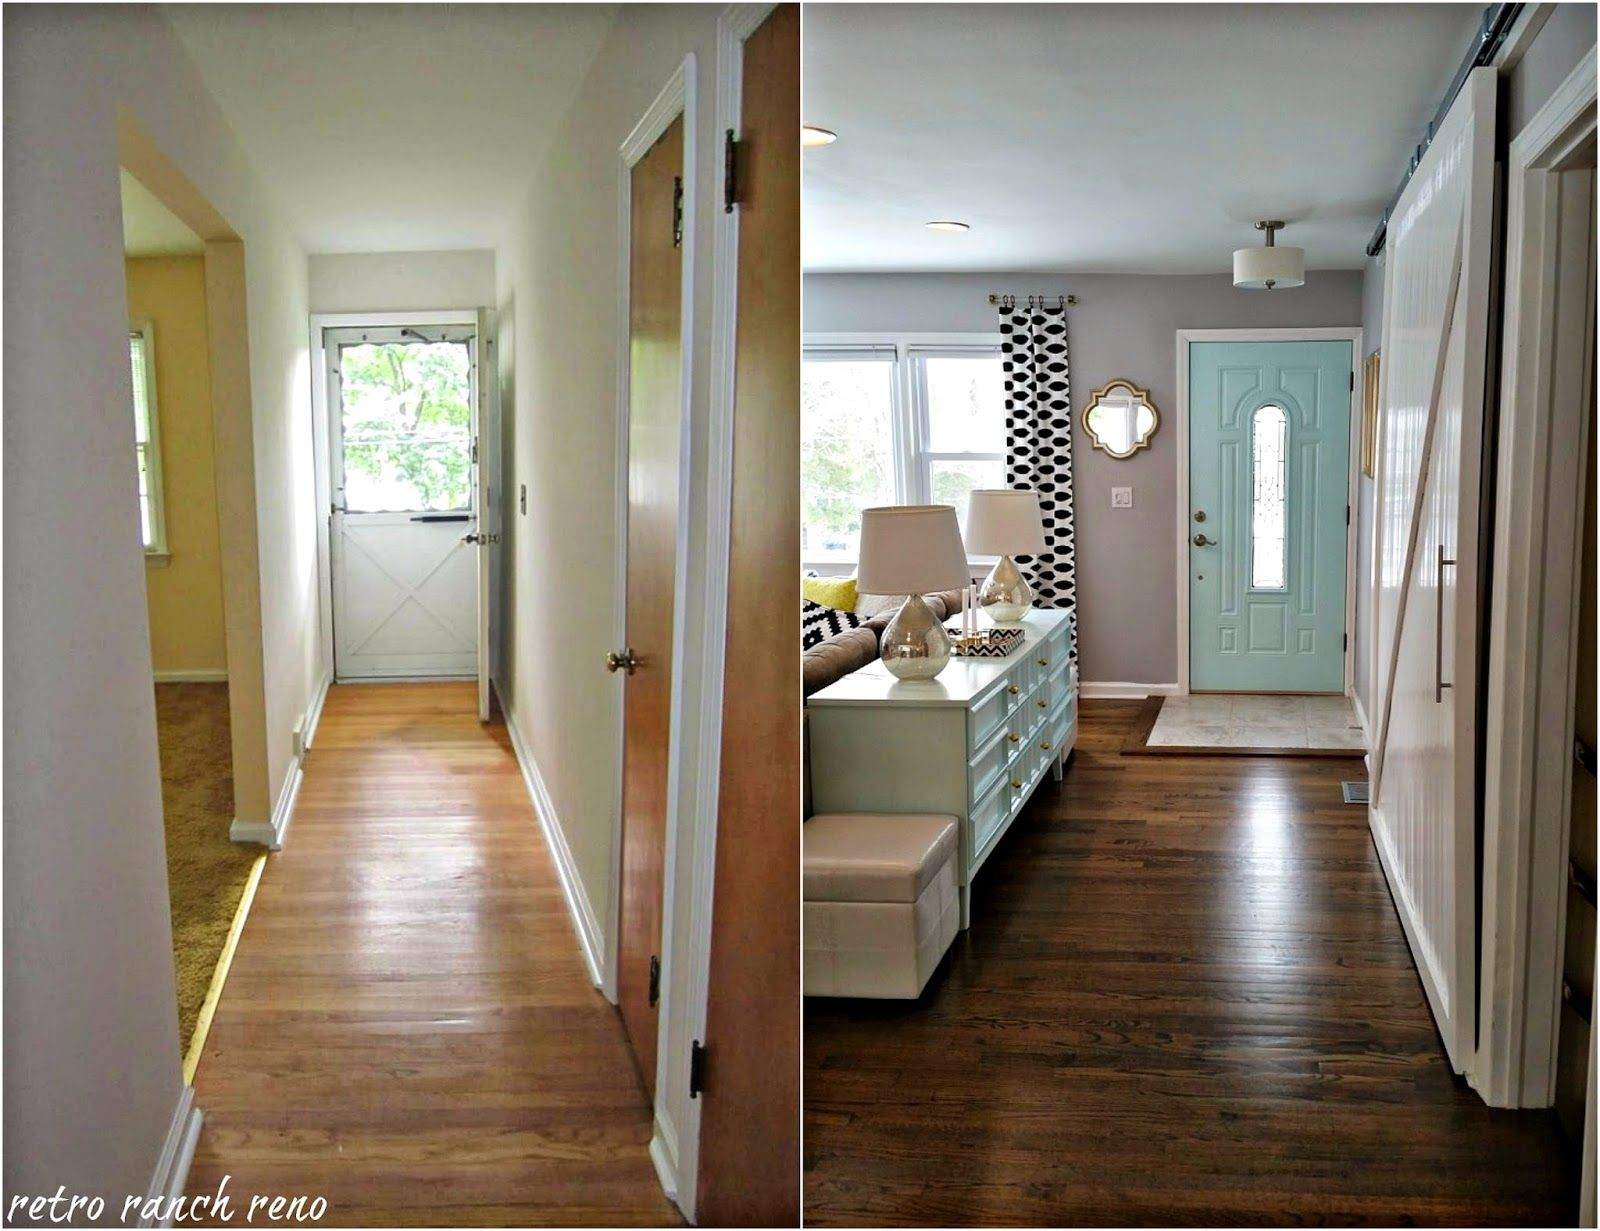 Retro ranch reno our rancher before after the - Living room renovation before and after ...